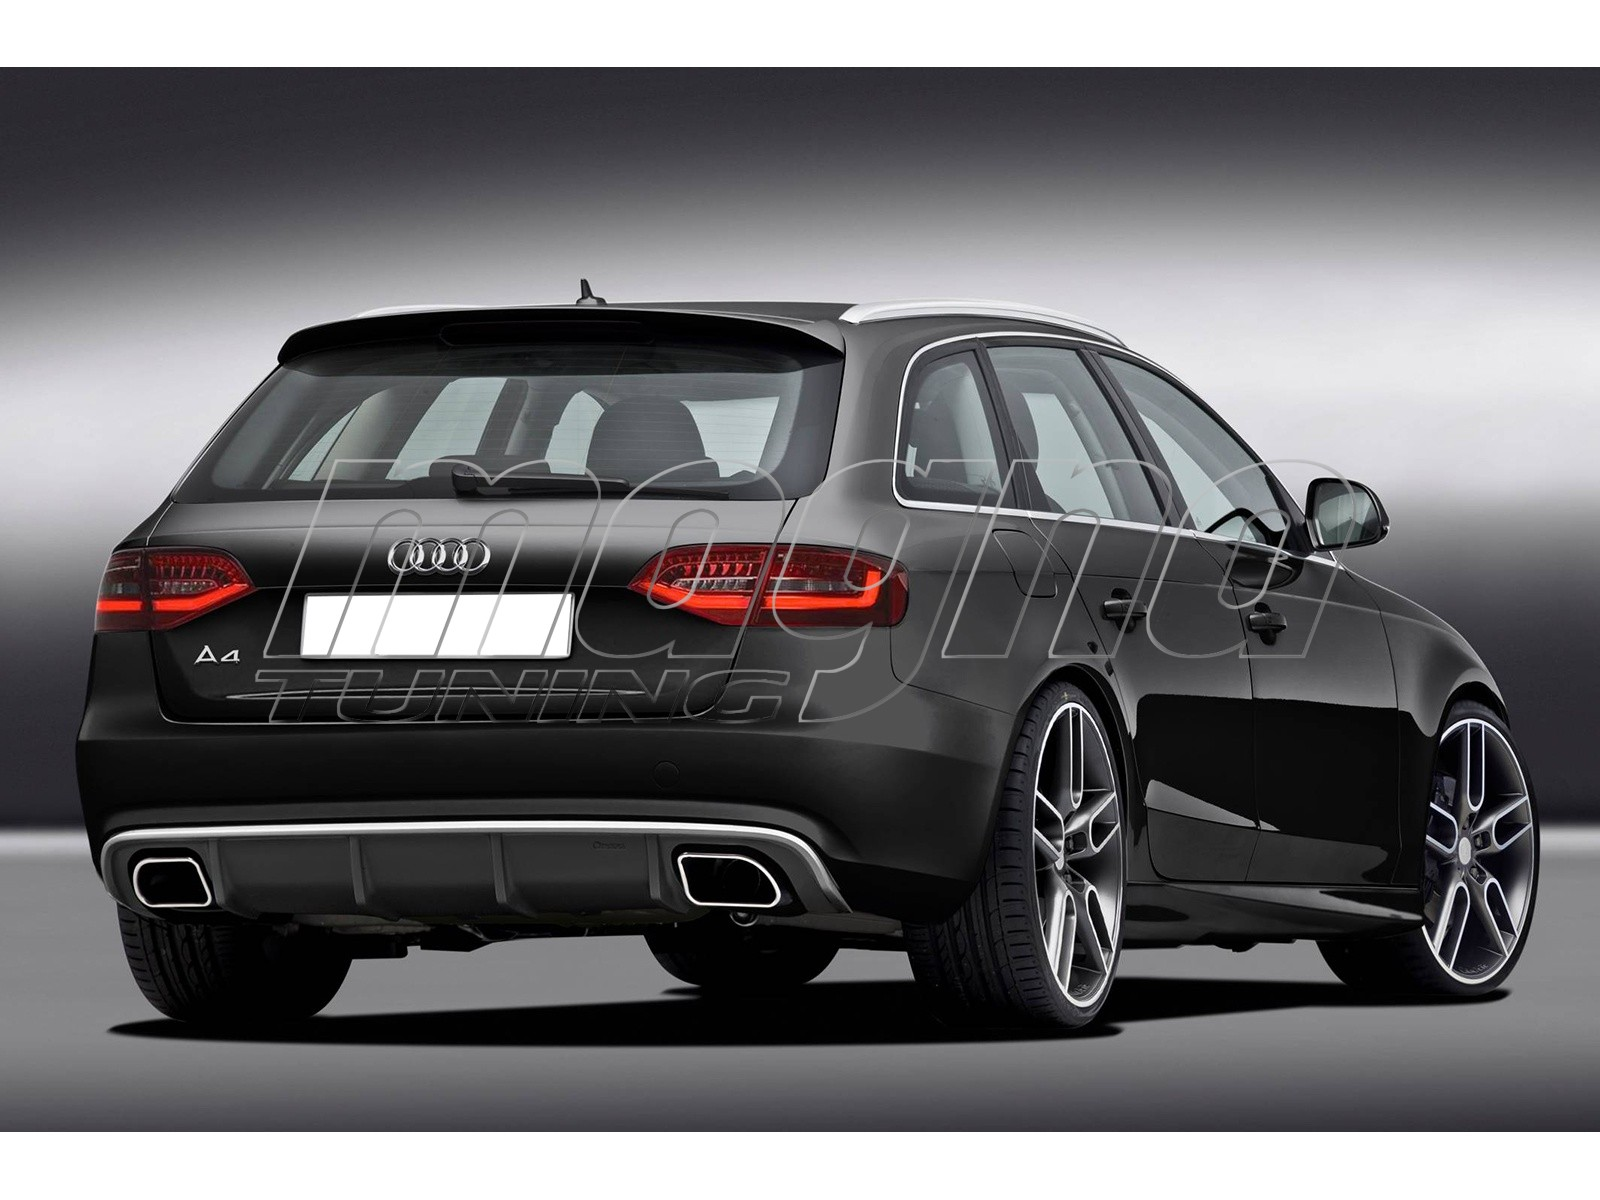 audi a4 b8 8k facelift avant cx body kit. Black Bedroom Furniture Sets. Home Design Ideas